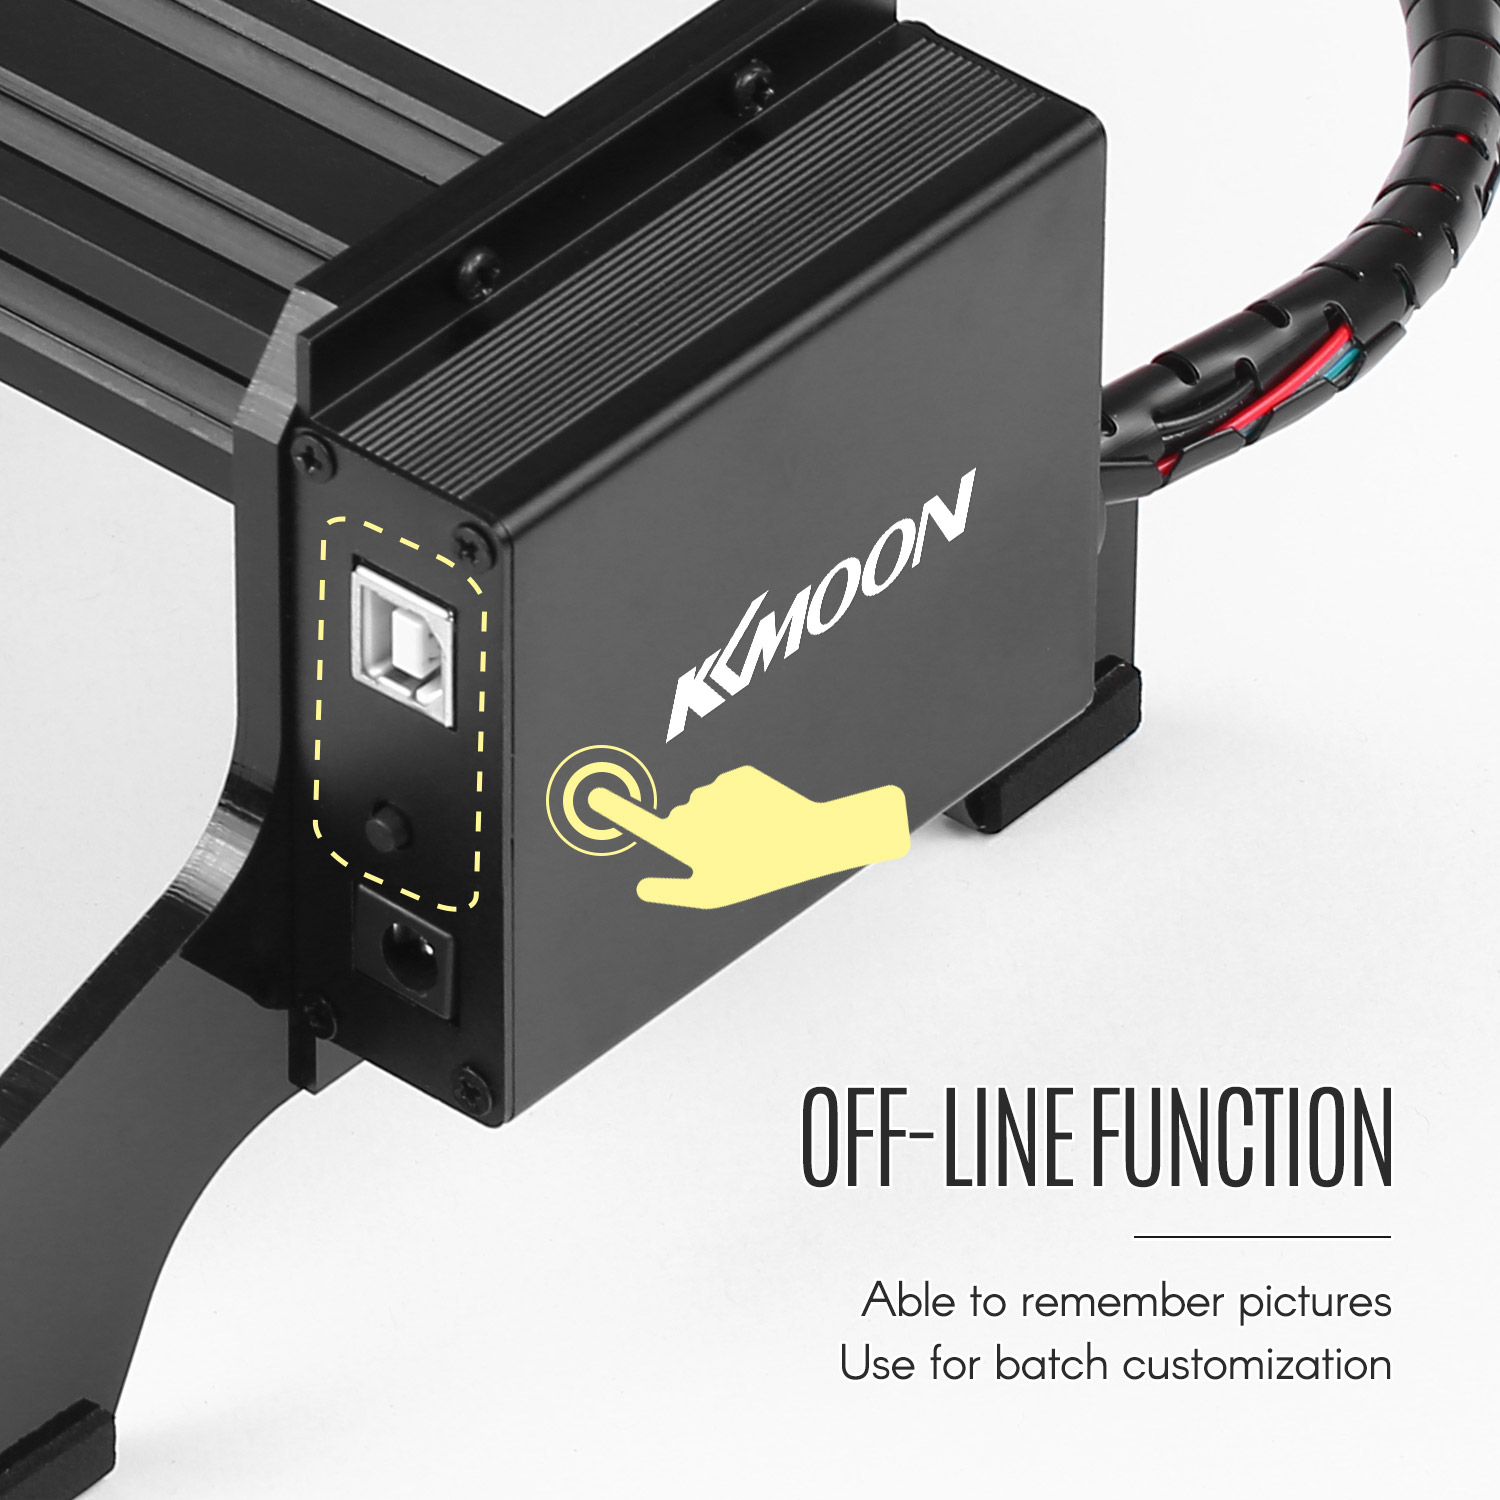 Hot <font><b>20W</b></font> Upgrated DIY USB CNC Router <font><b>Laser</b></font> Engraver <font><b>Laser</b></font> Engraving Printer Machine <font><b>Cutting</b></font> Carver Off-line Location Operation image